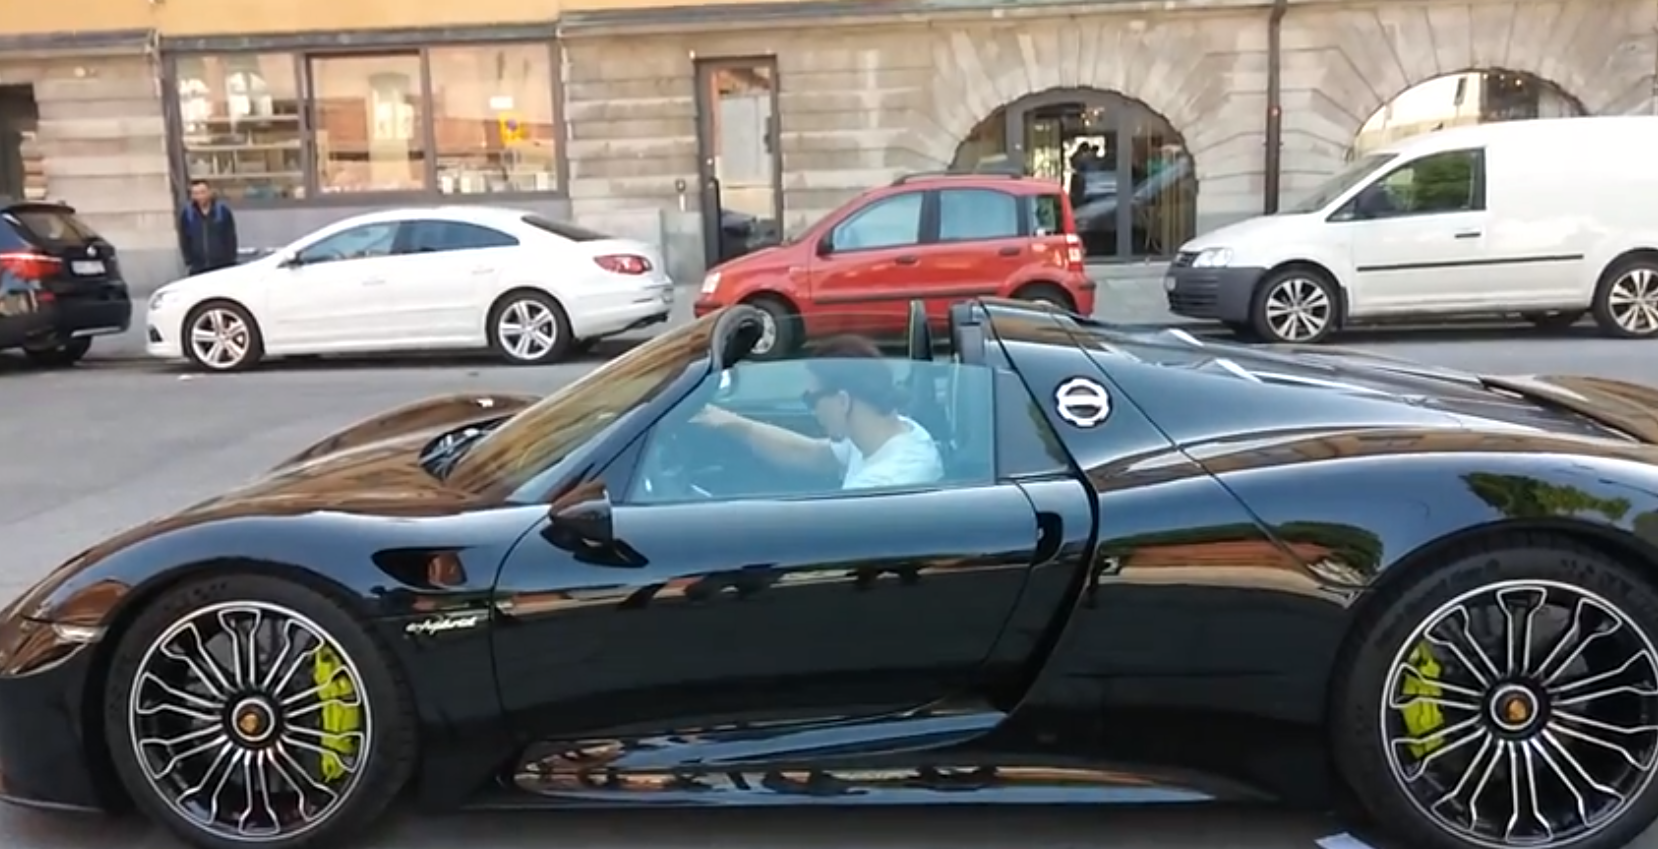 Zlatan Ibrahimovic Drives Porsche 918 Hybrid Supercar In Stockholm